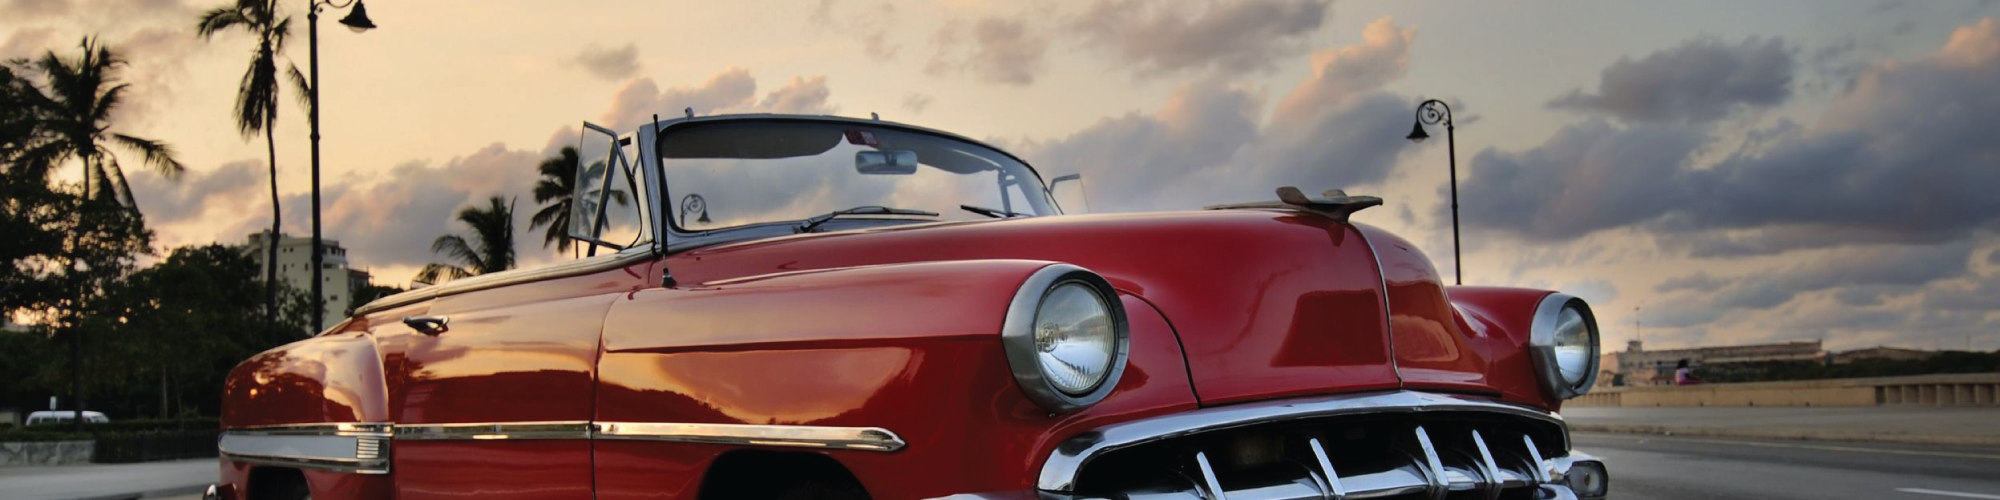 Get your Classic Car Shipped with Suncoast Auto Transport